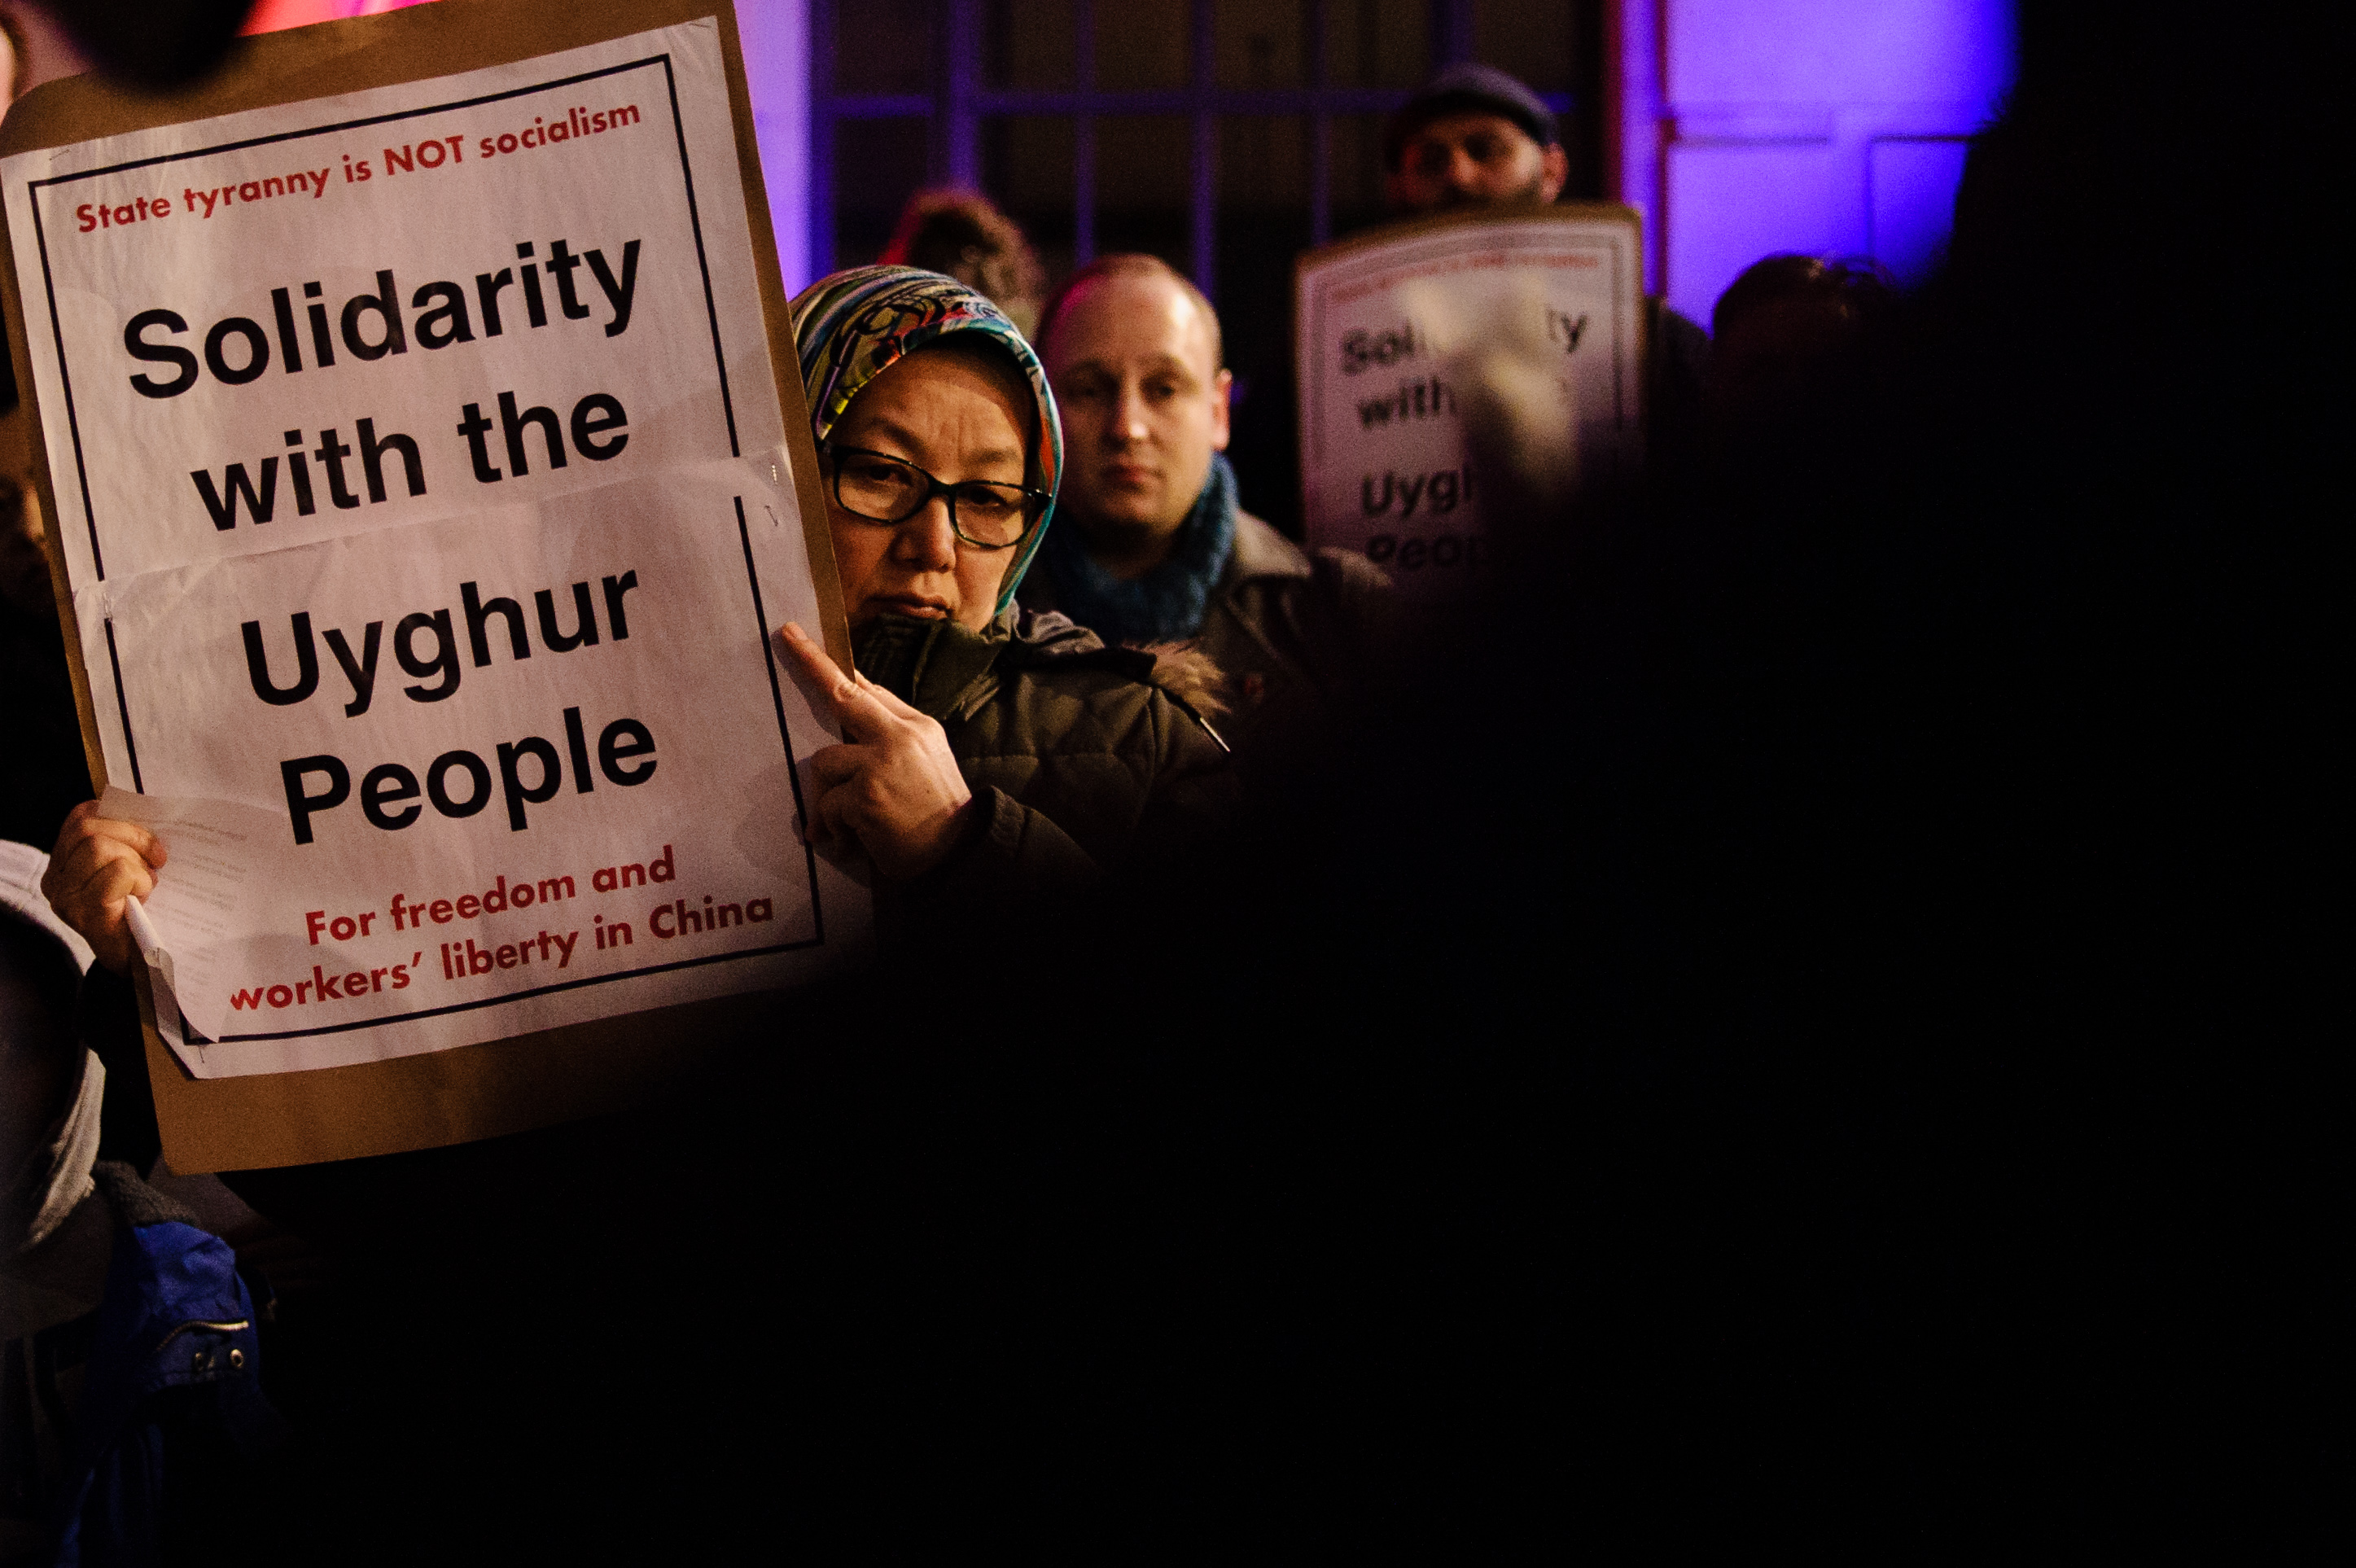 """A protester holds a sign that reads """"Solidarity with the Uyghur people."""""""